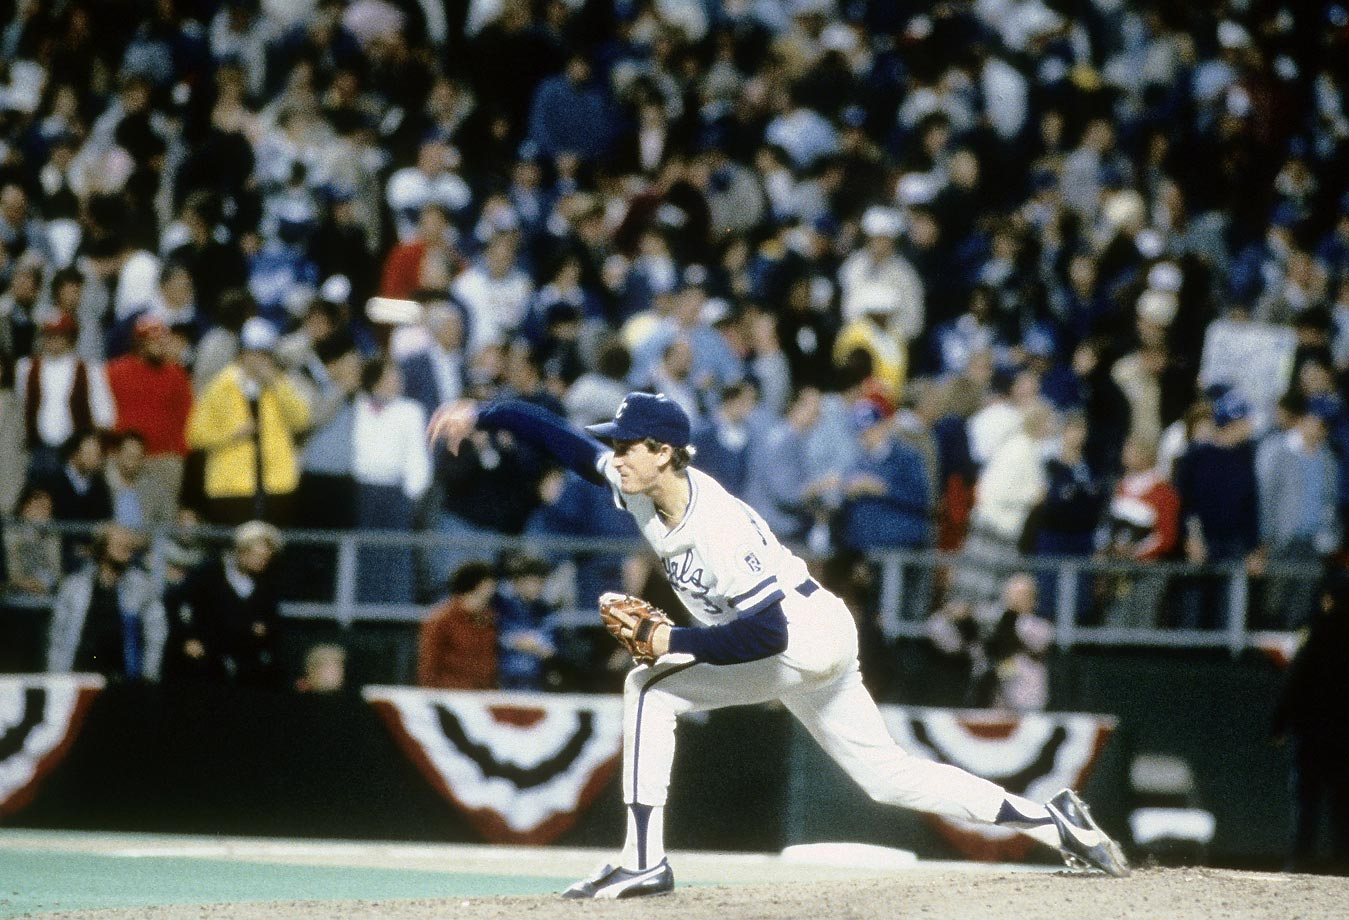 Bret Saberhagen throws during the final game of the World Series. The 21-year-old finished the season with a 20-6 record.